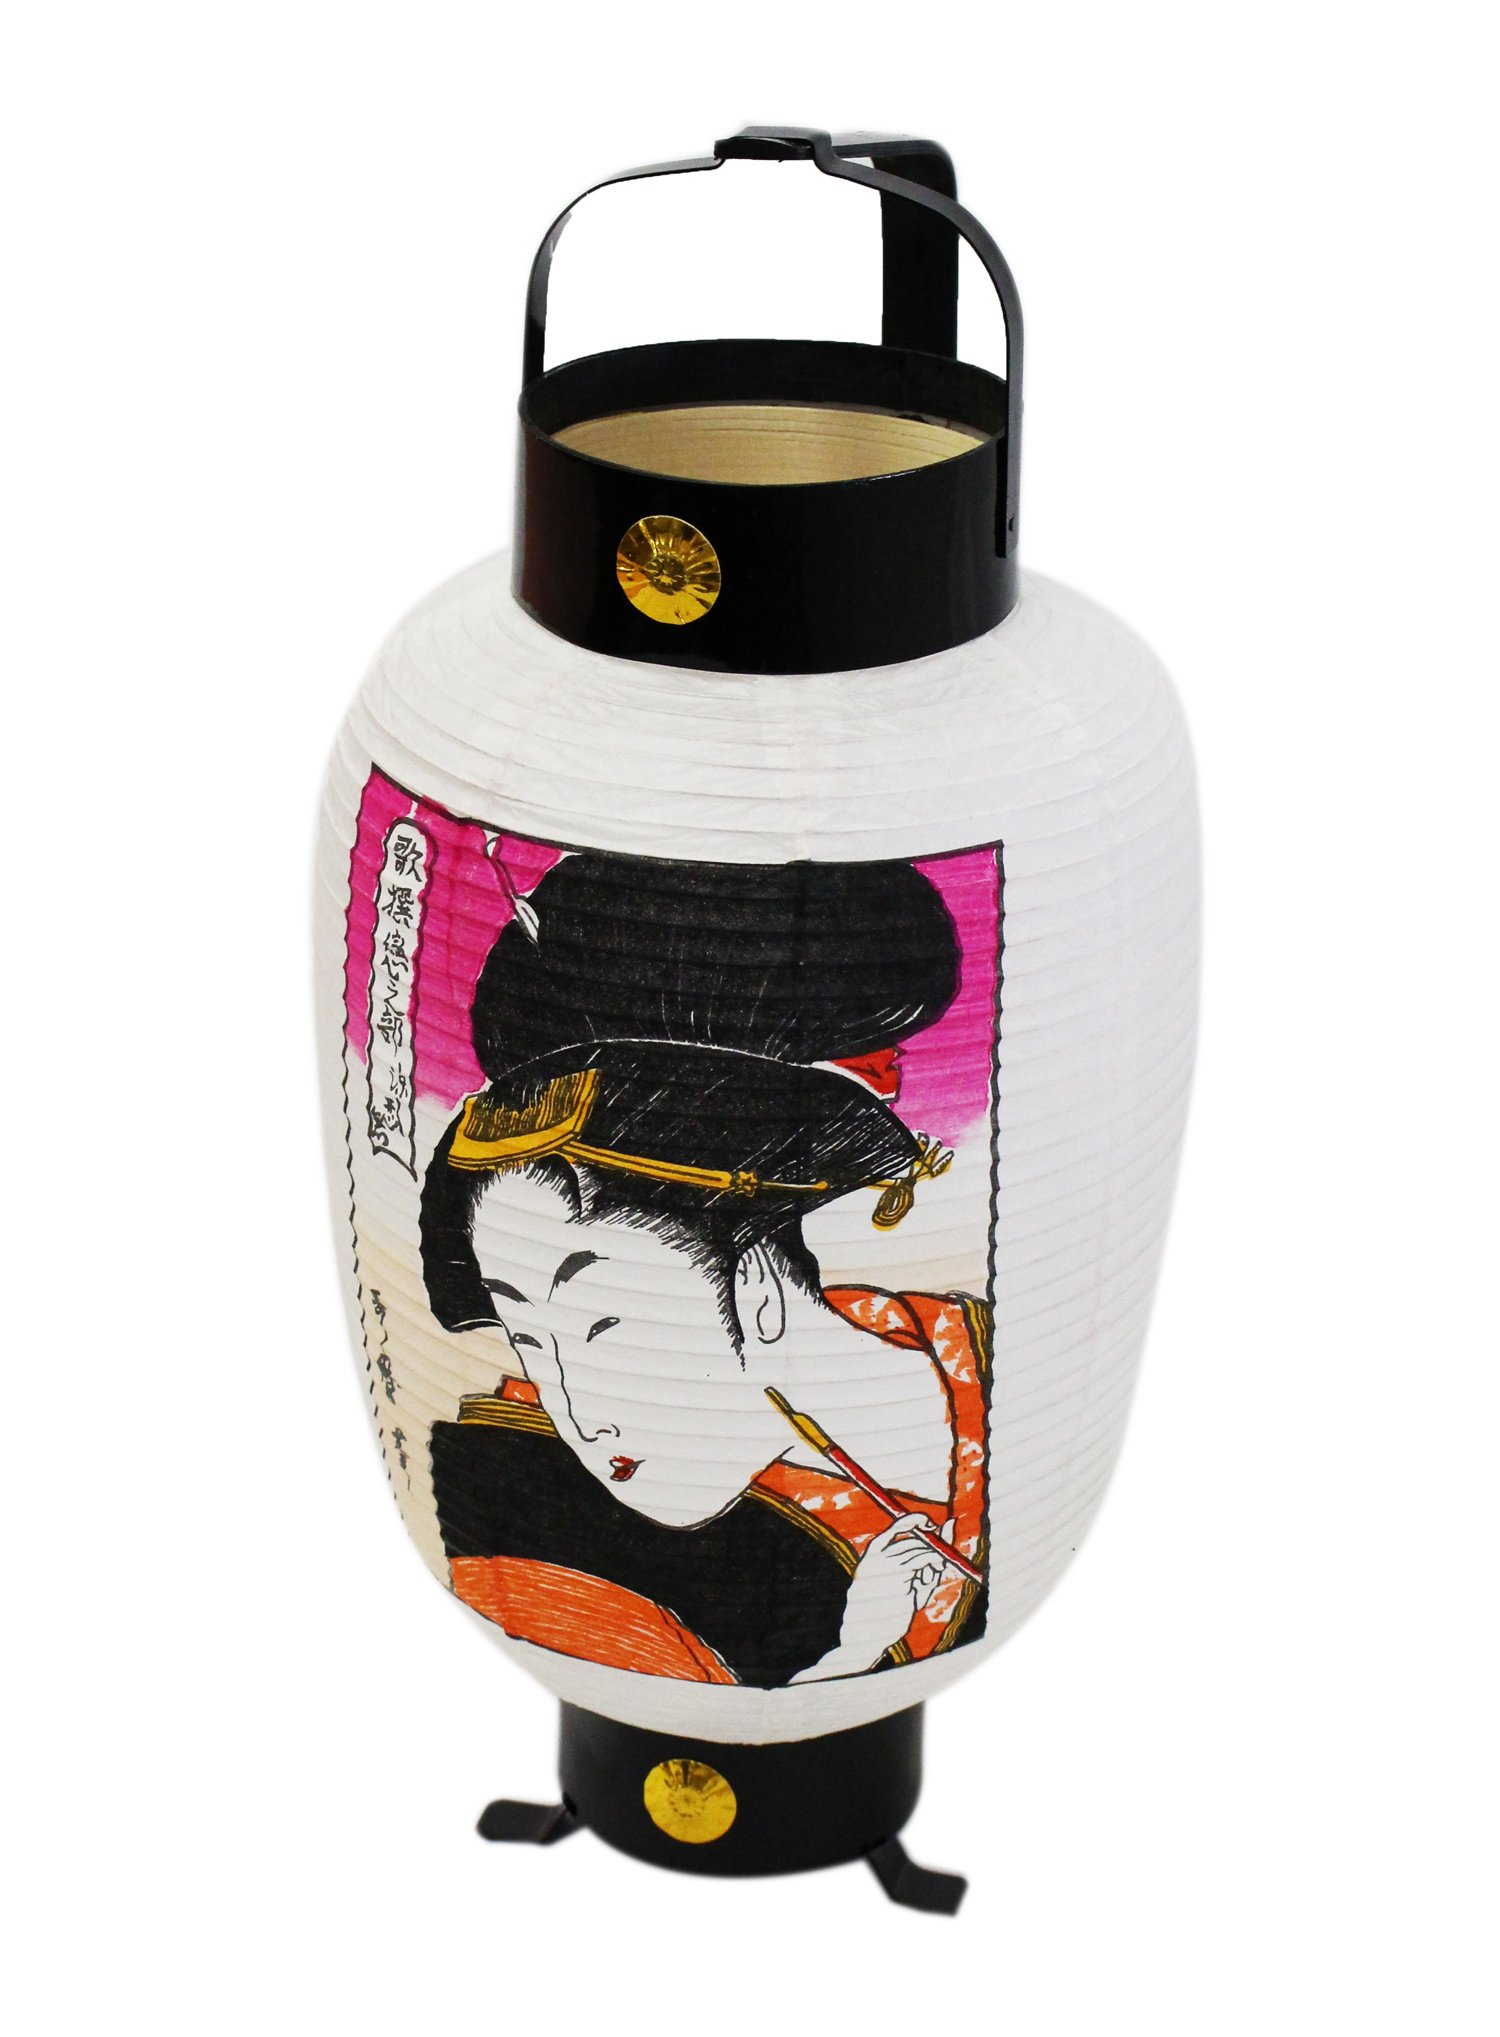 Japanese-made lanterns No. 6 Kisel 4002